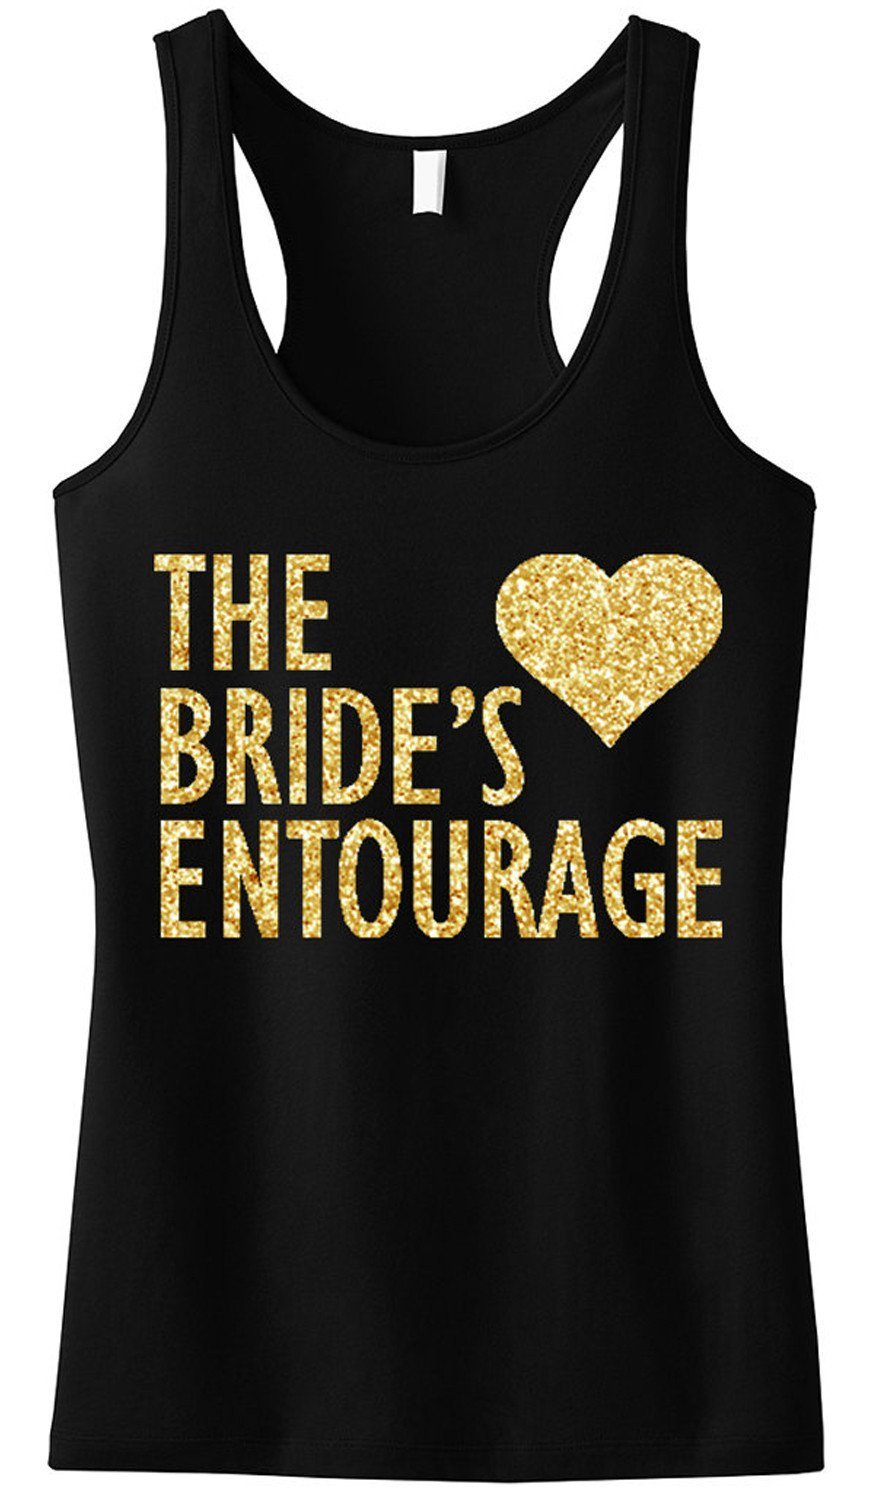 BRIDE'S ENTOURAGE Gold GLITTER Tank Top. Includes shipping - Expressions2u